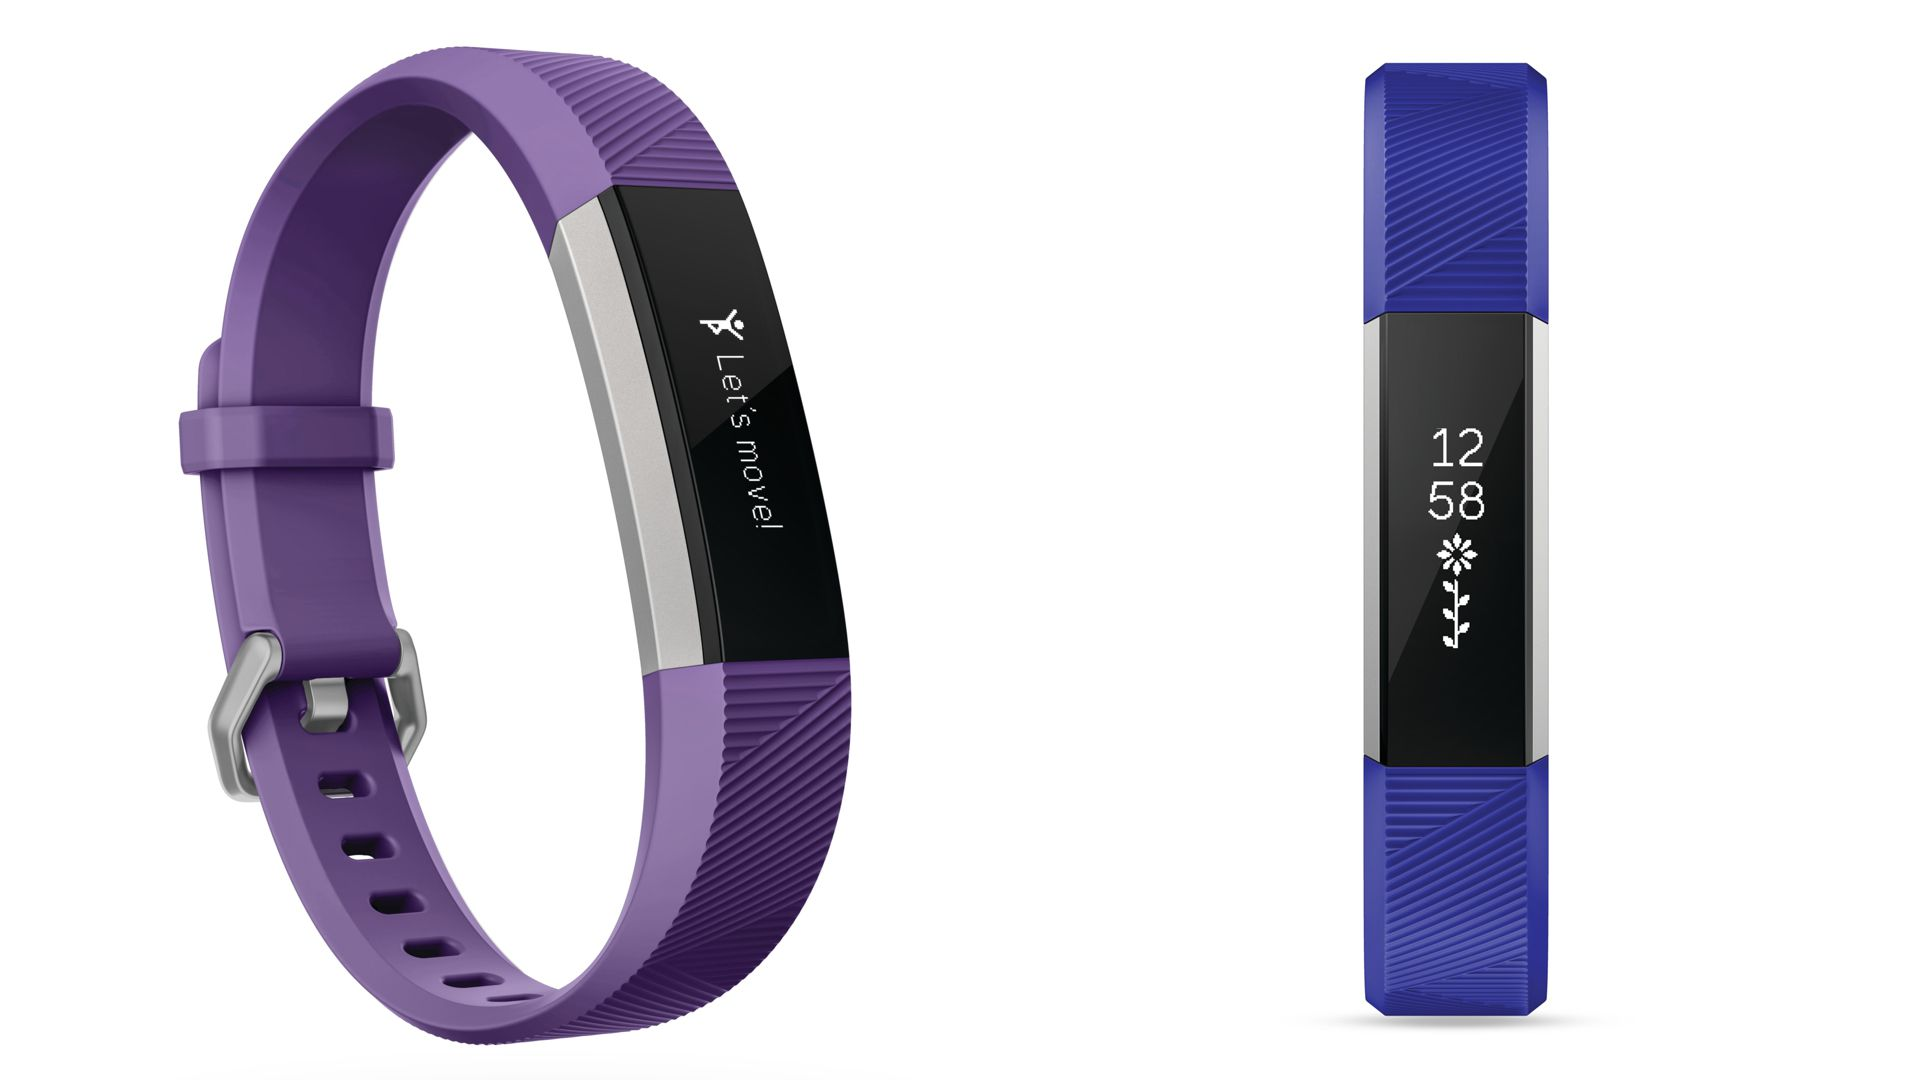 Fitbit Ace prices deals selling fitness equipment for children